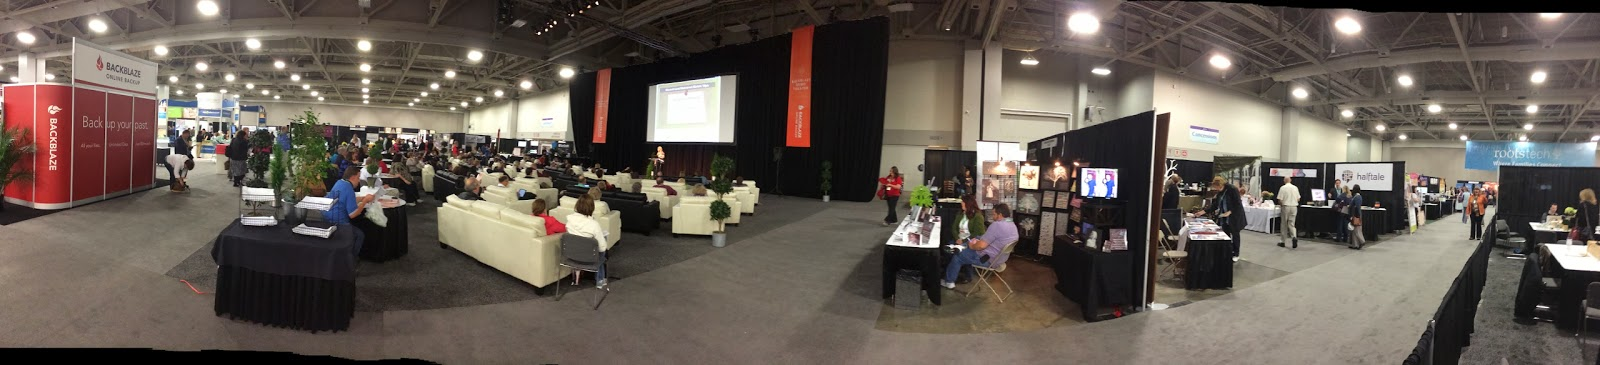 Expo Hall Panorama View from Media Center